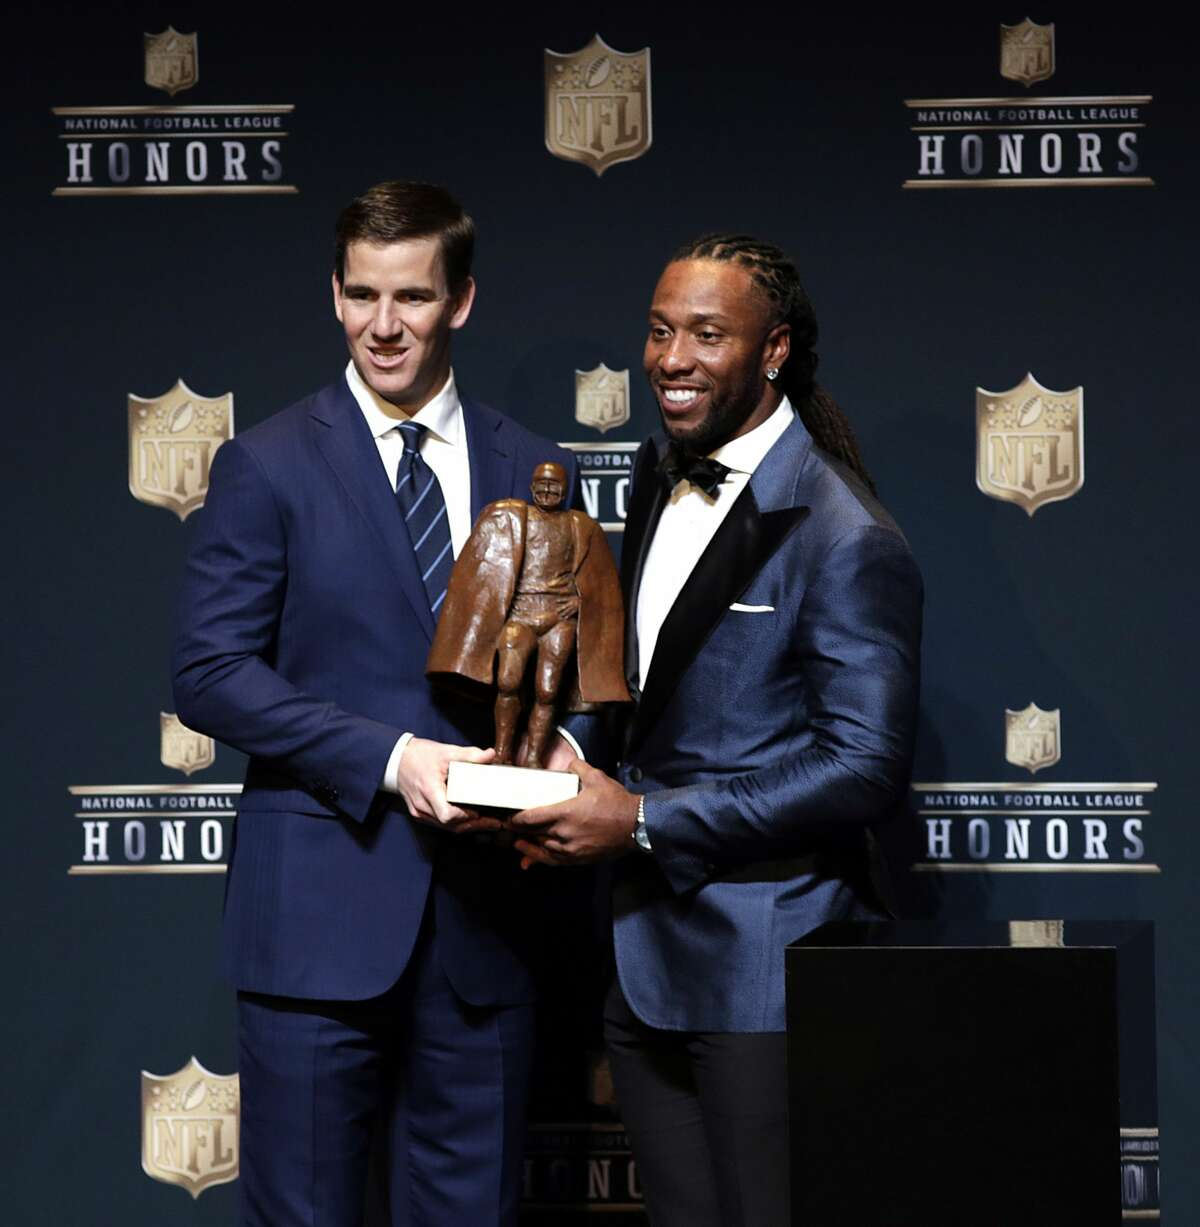 Walter Payton NFL Man of the Year winners Eli Manning left, and Larry Fitzgerald right, during the NFL Honors media availability at the Wortham Center Saturday, Feb. 4, 2017, in Houston. ( James Nielsen / Houston Chronicle )